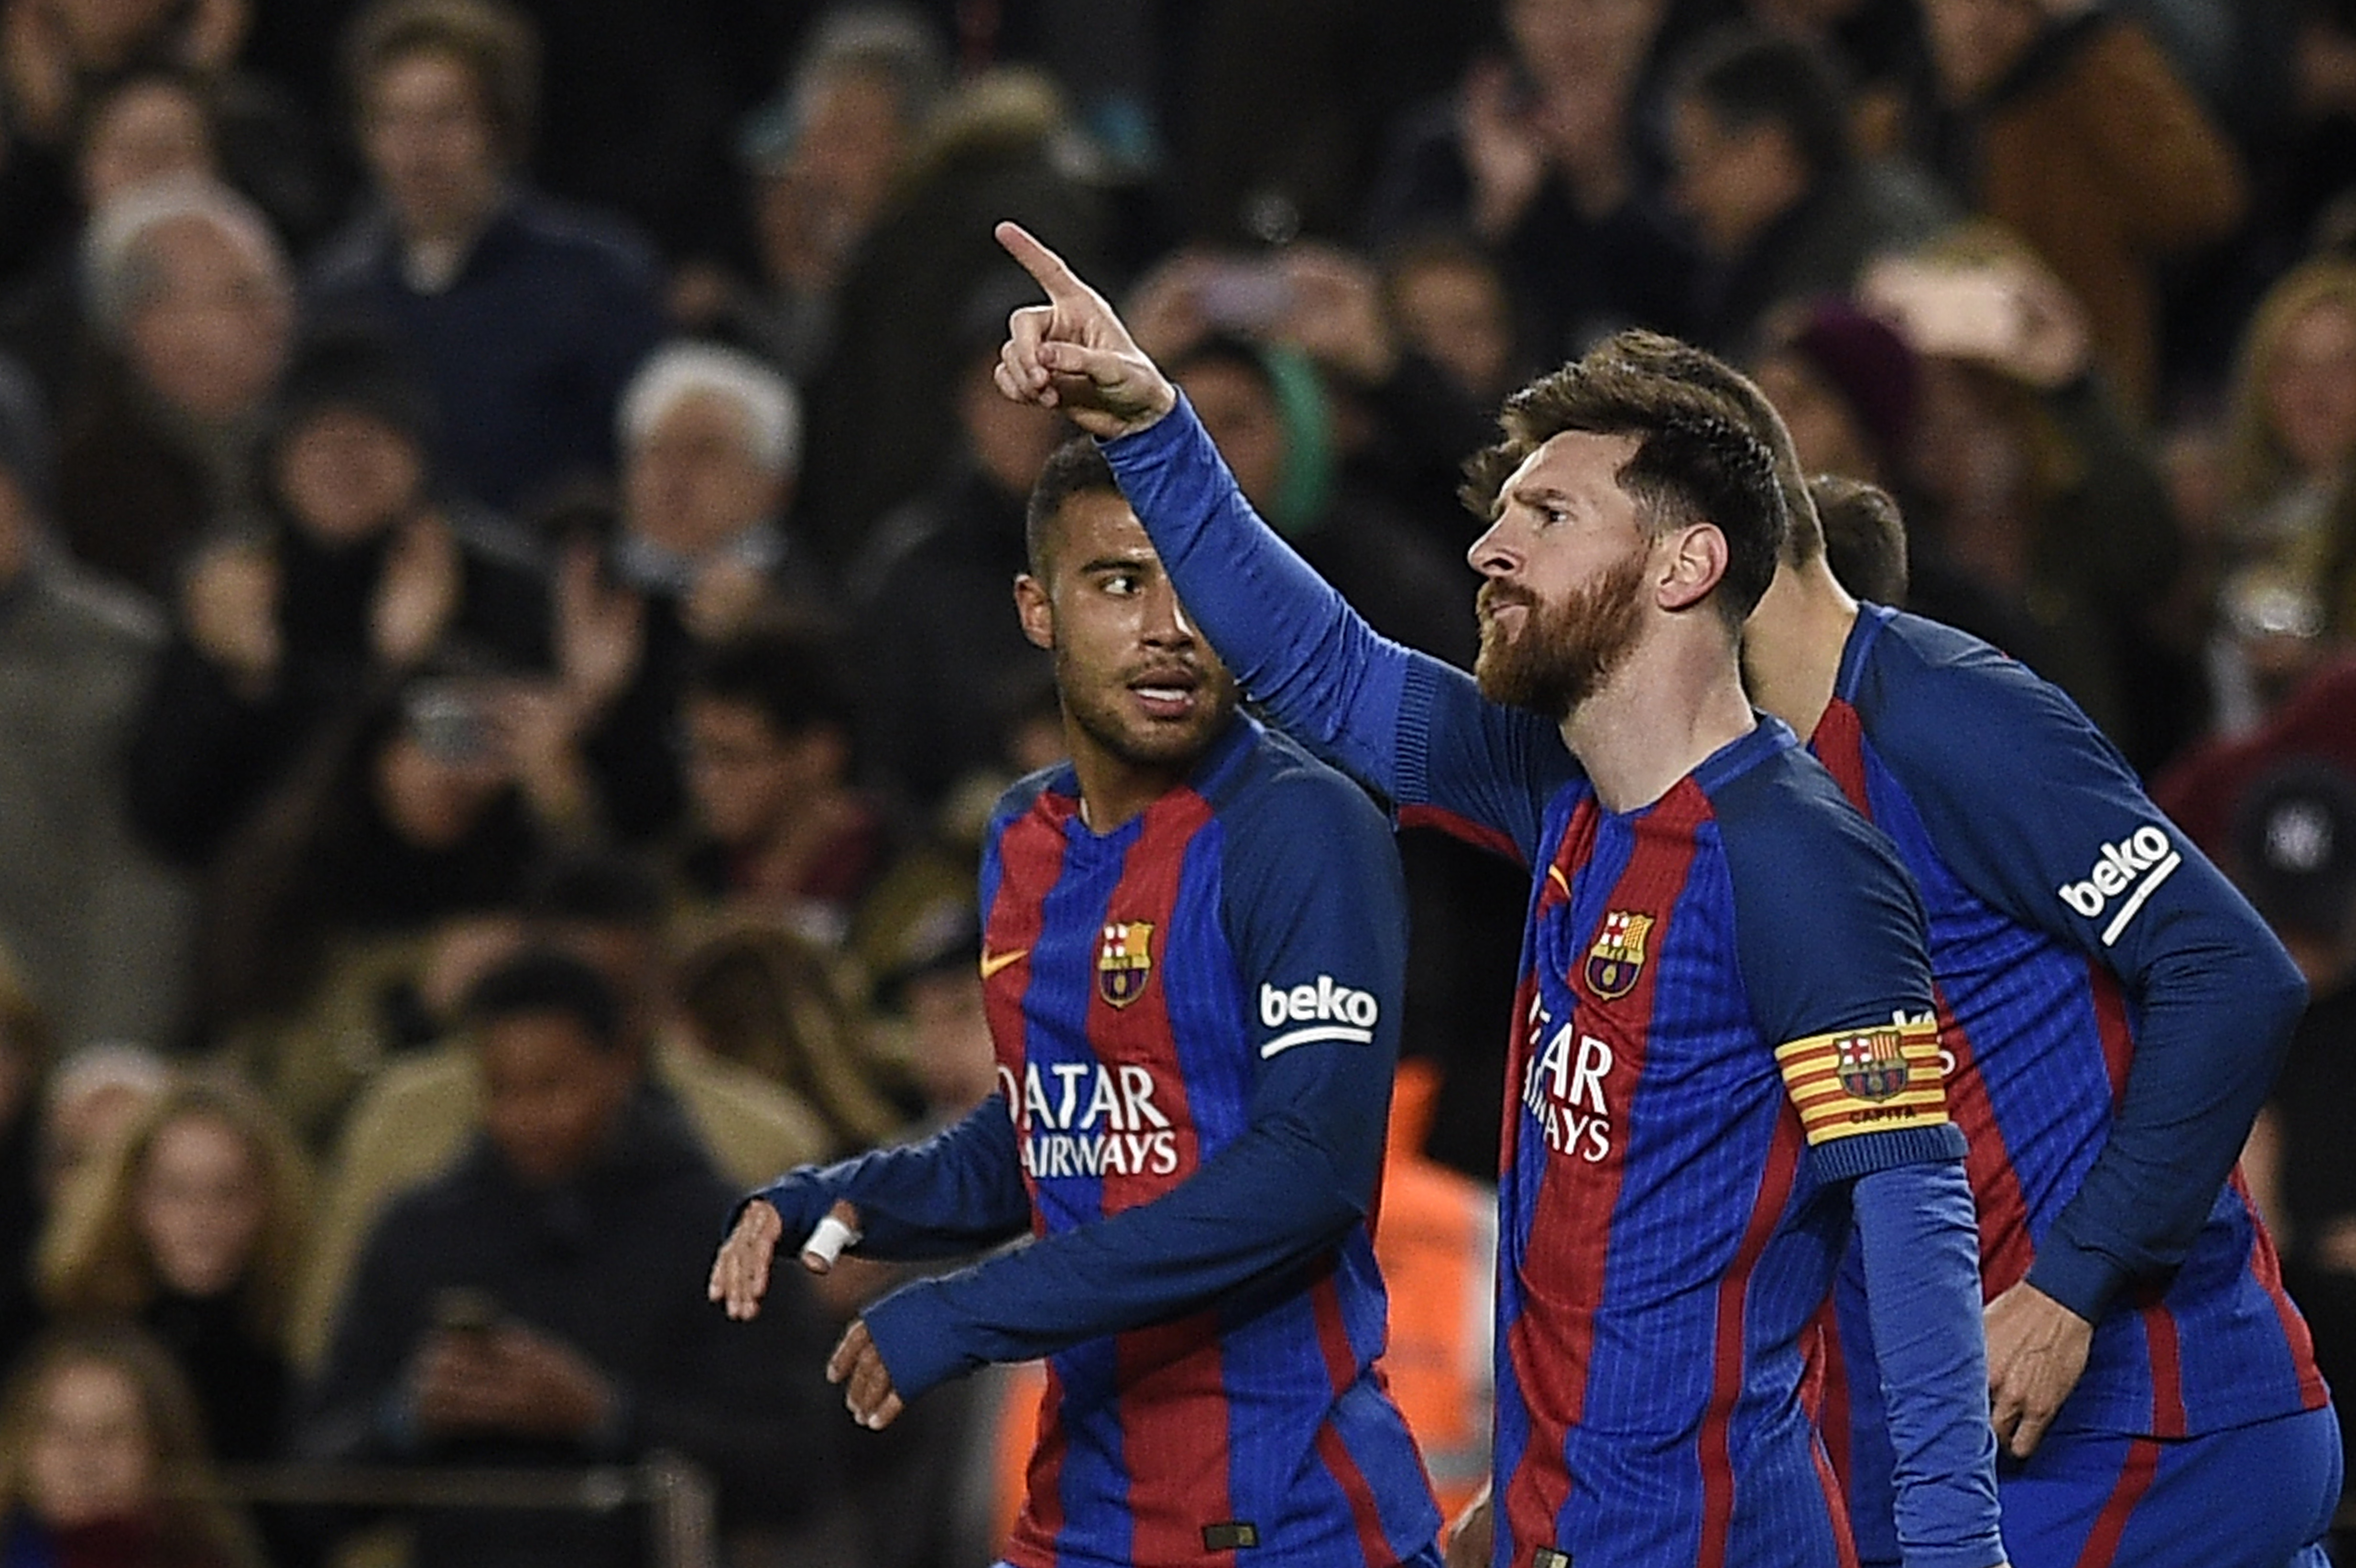 Juventus v Barcelona – TV channel, time, date, odds and match history